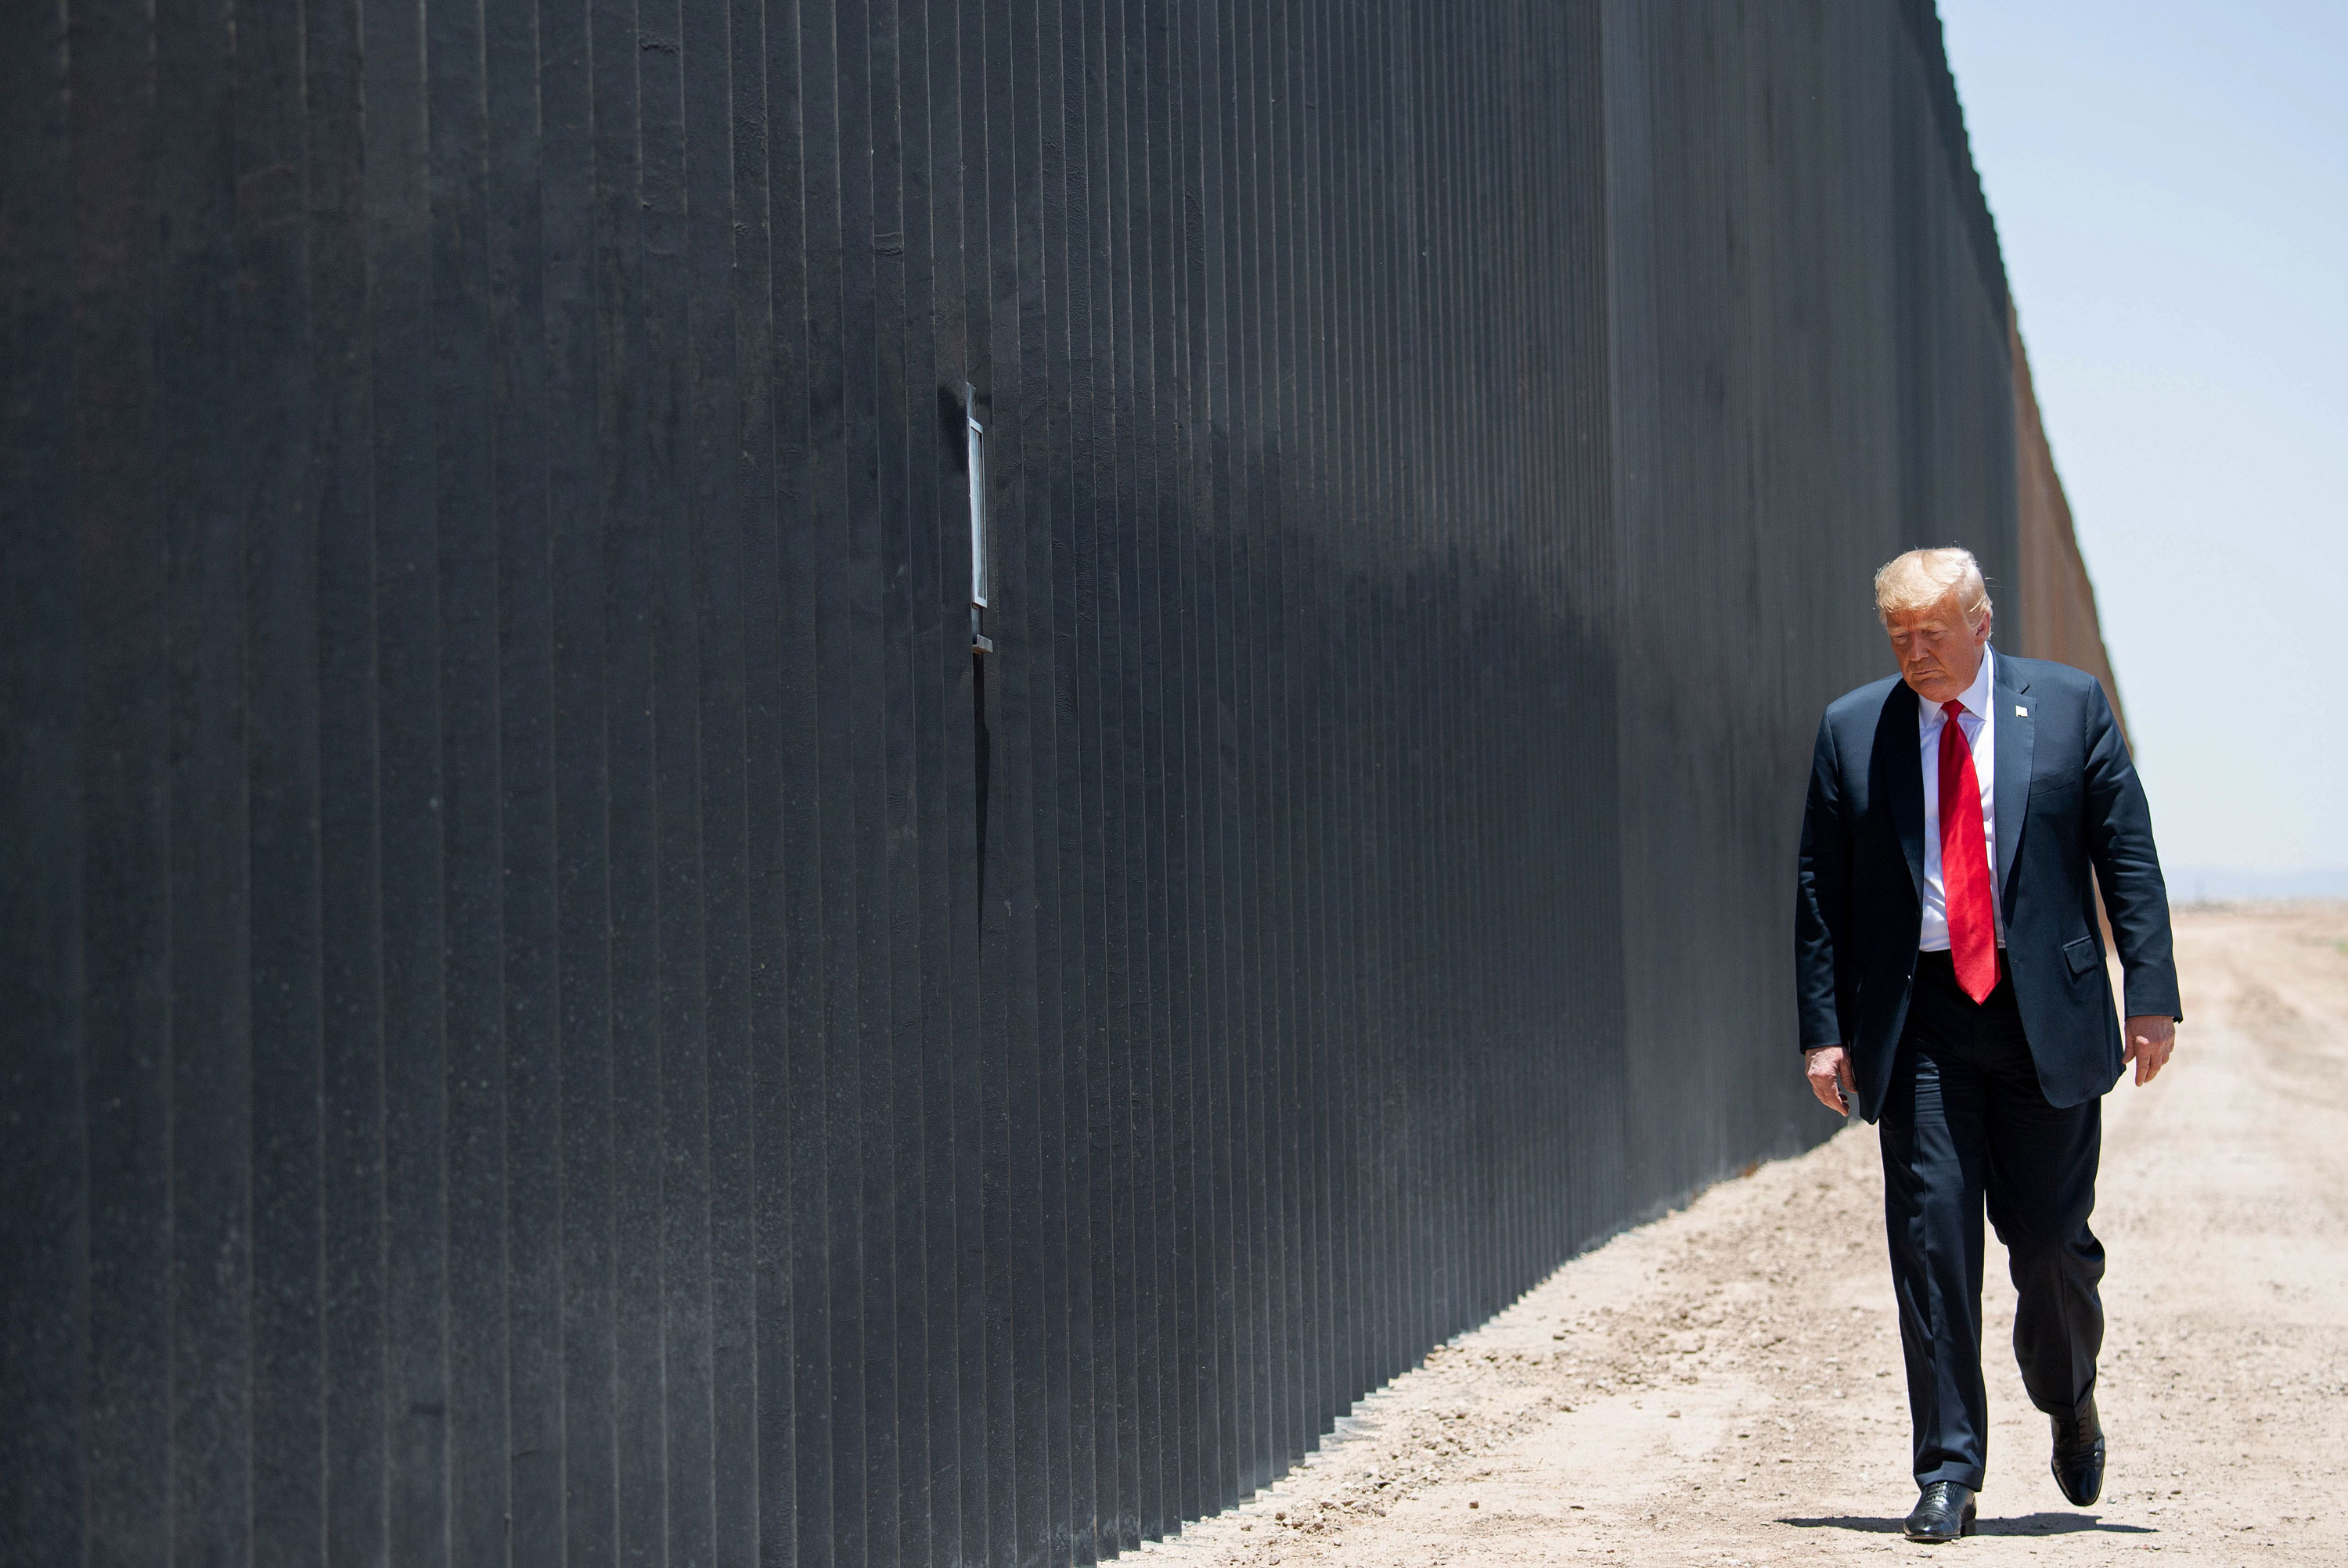 Biden's desire to stop the border wall could be costly and arduous